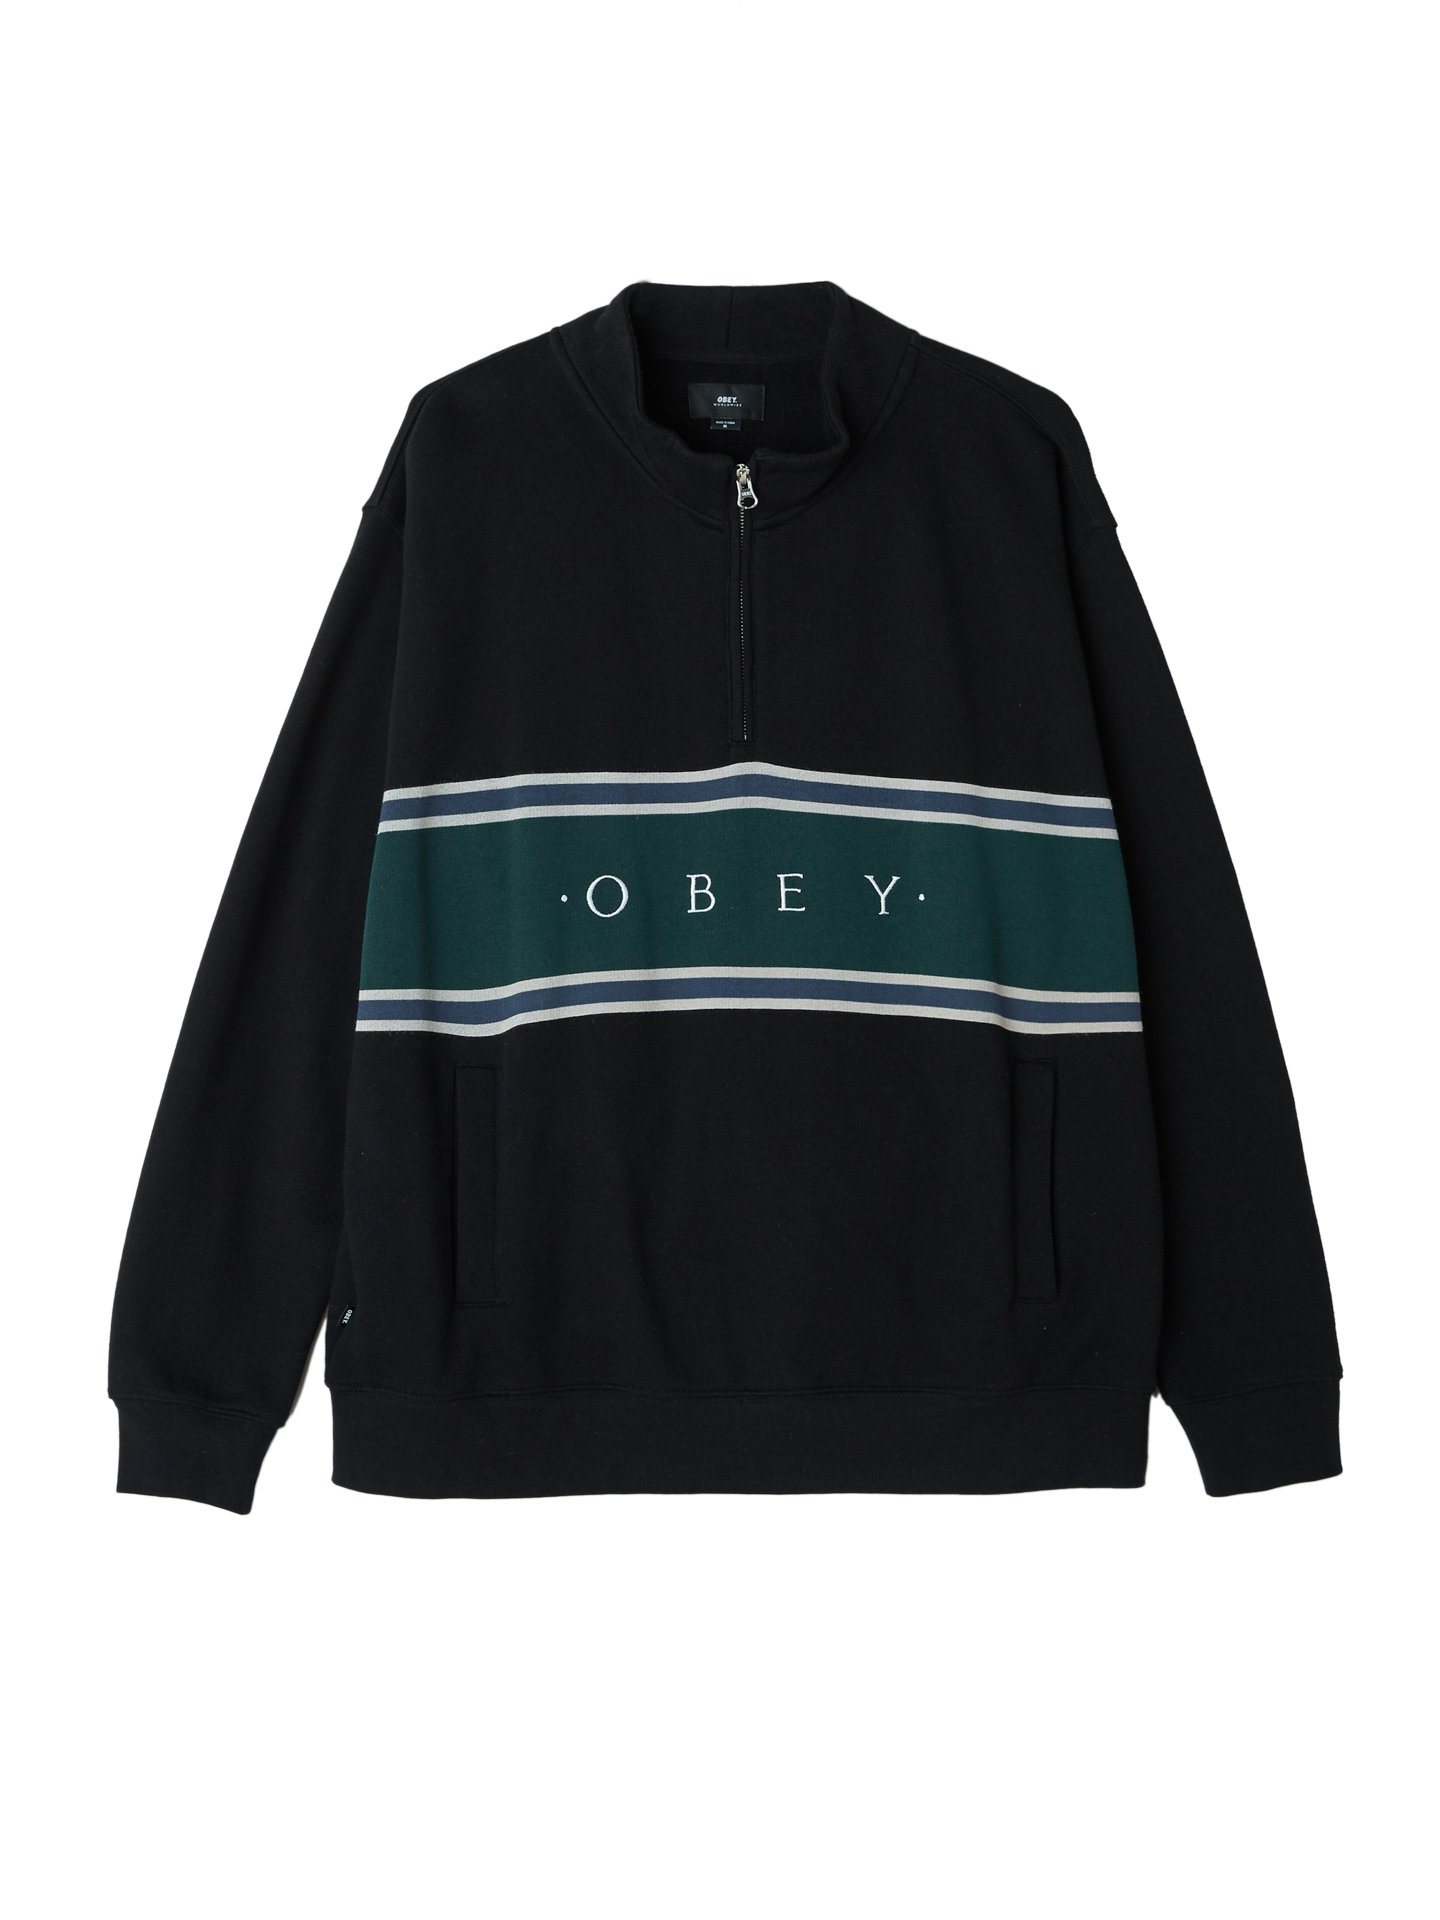 ca0ce9d9 Palisade Mock Neck Zip - Obey Clothing UK